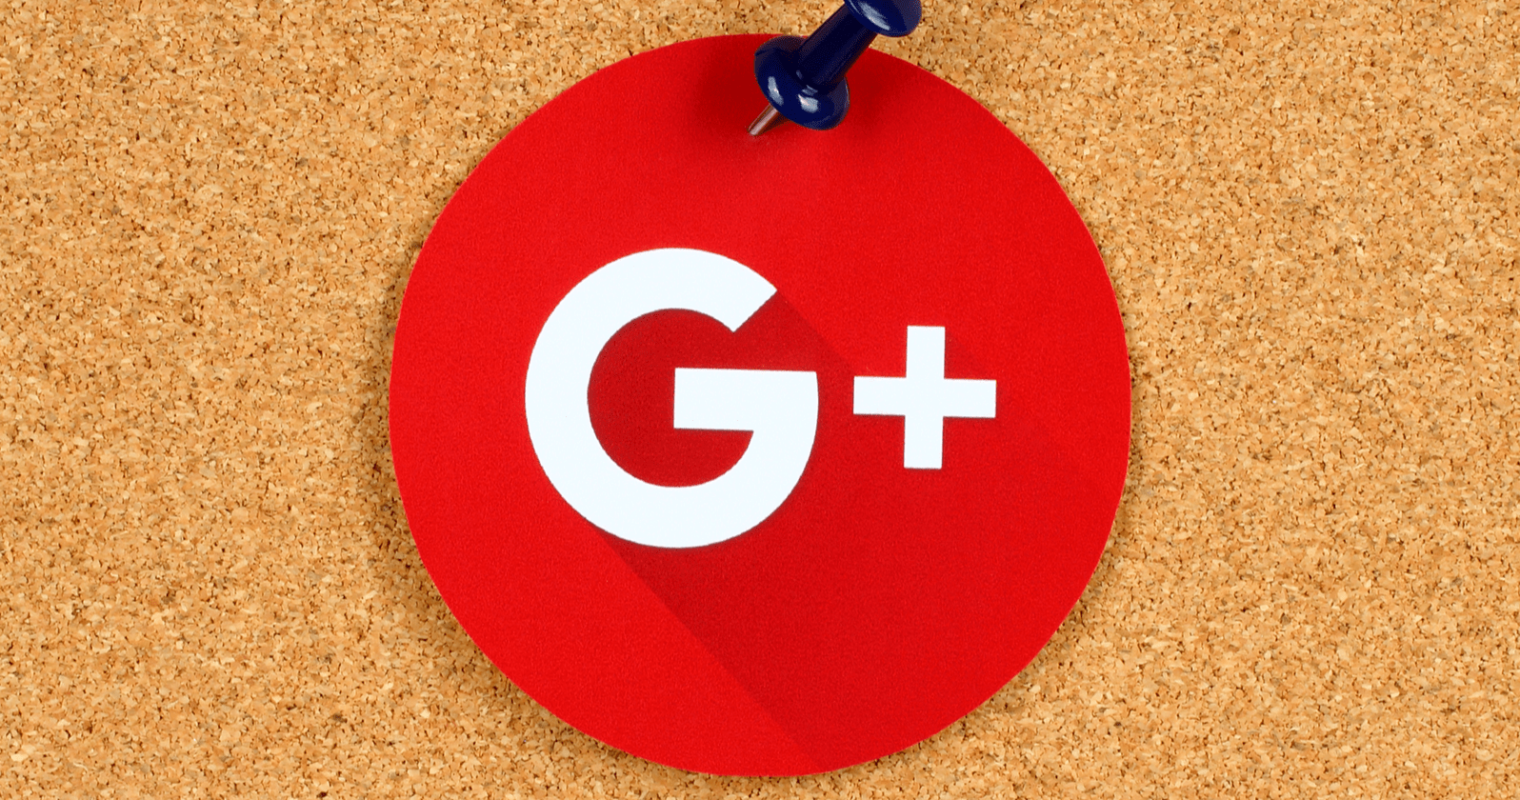 Google is Shutting Down Google+, Admits Low Consumer Adoption